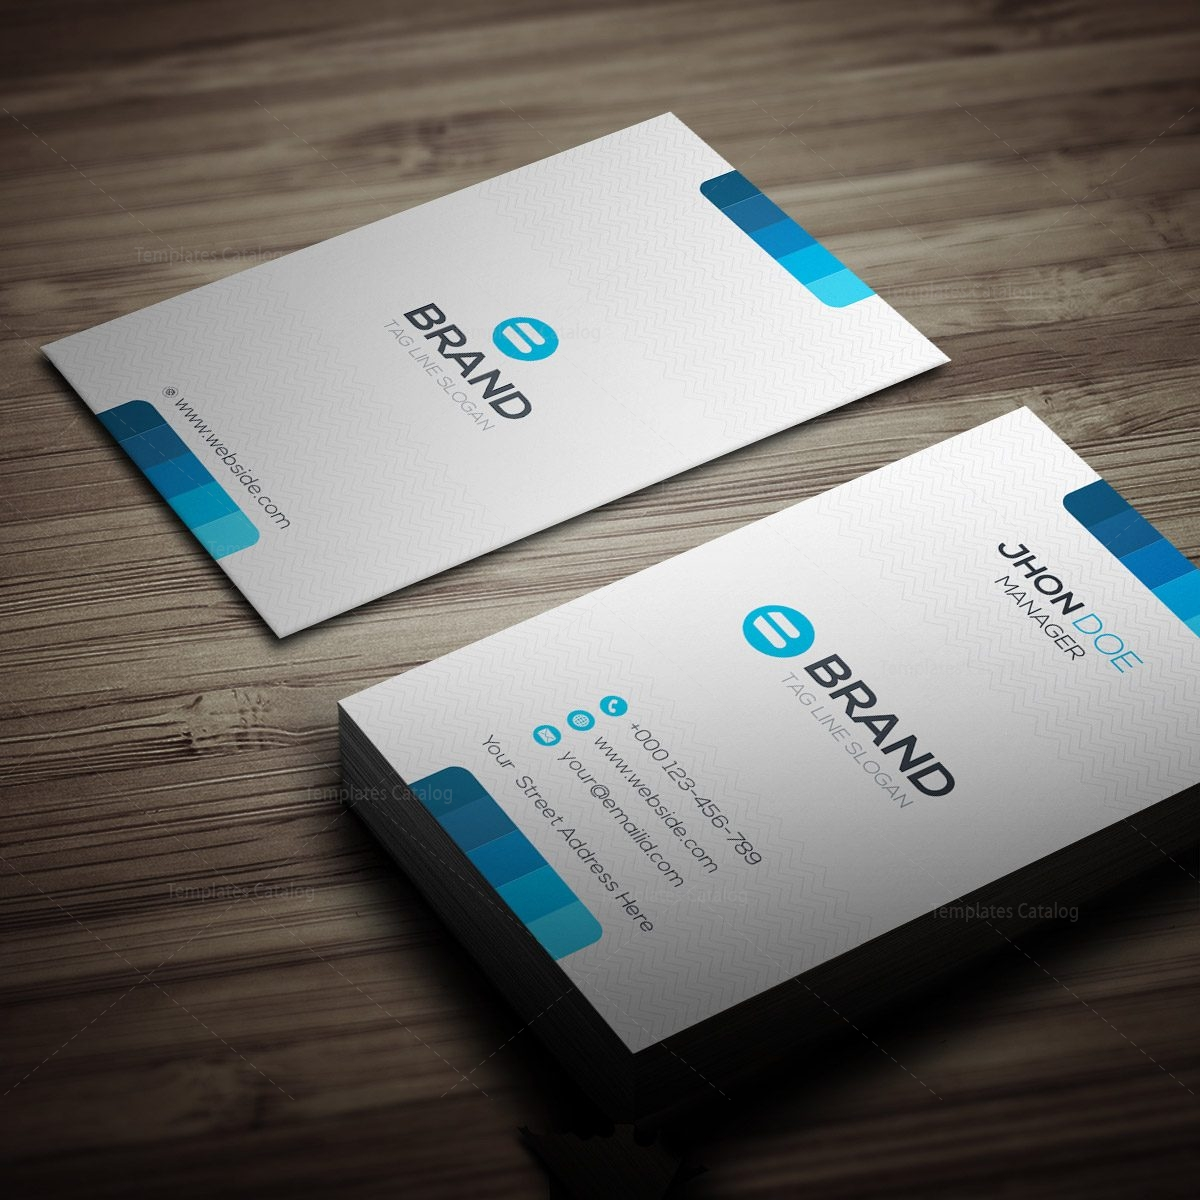 Vertical Business Card Template Free: Horizontal + Vertical Business Card Template 000270